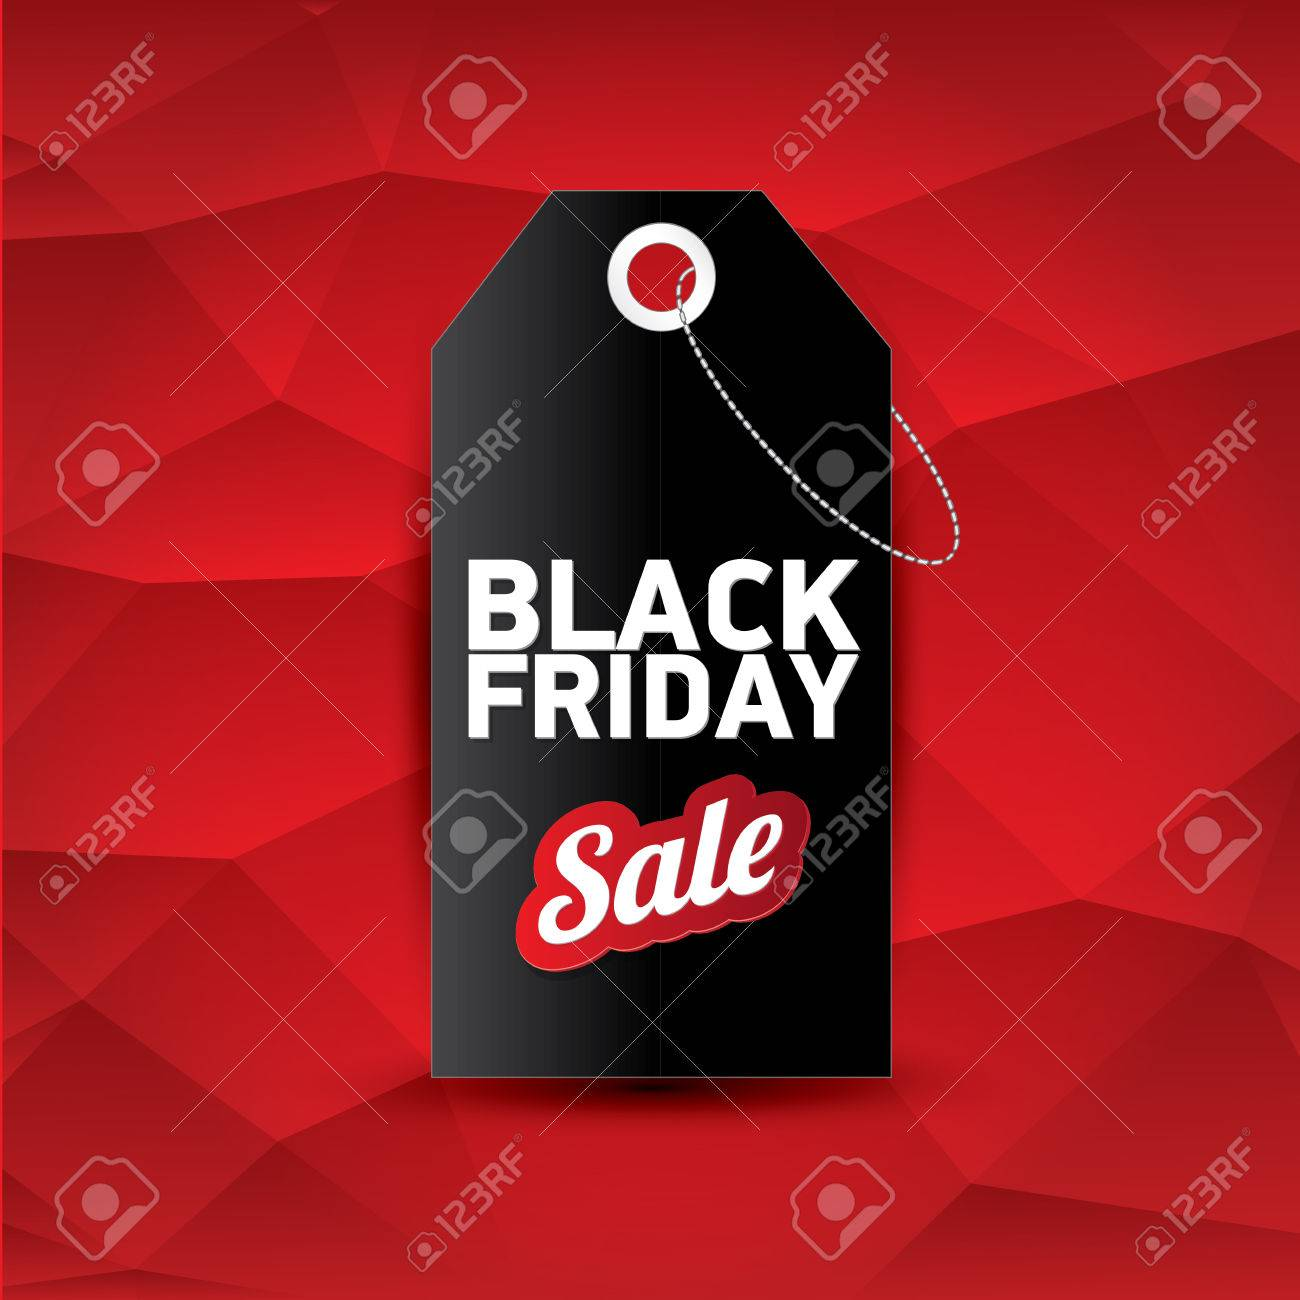 Black Friday Sale Vector Black Friday Sales Tag Or Label On Abstract Polygonal Red Background Black Friday Sale Poster Or Background